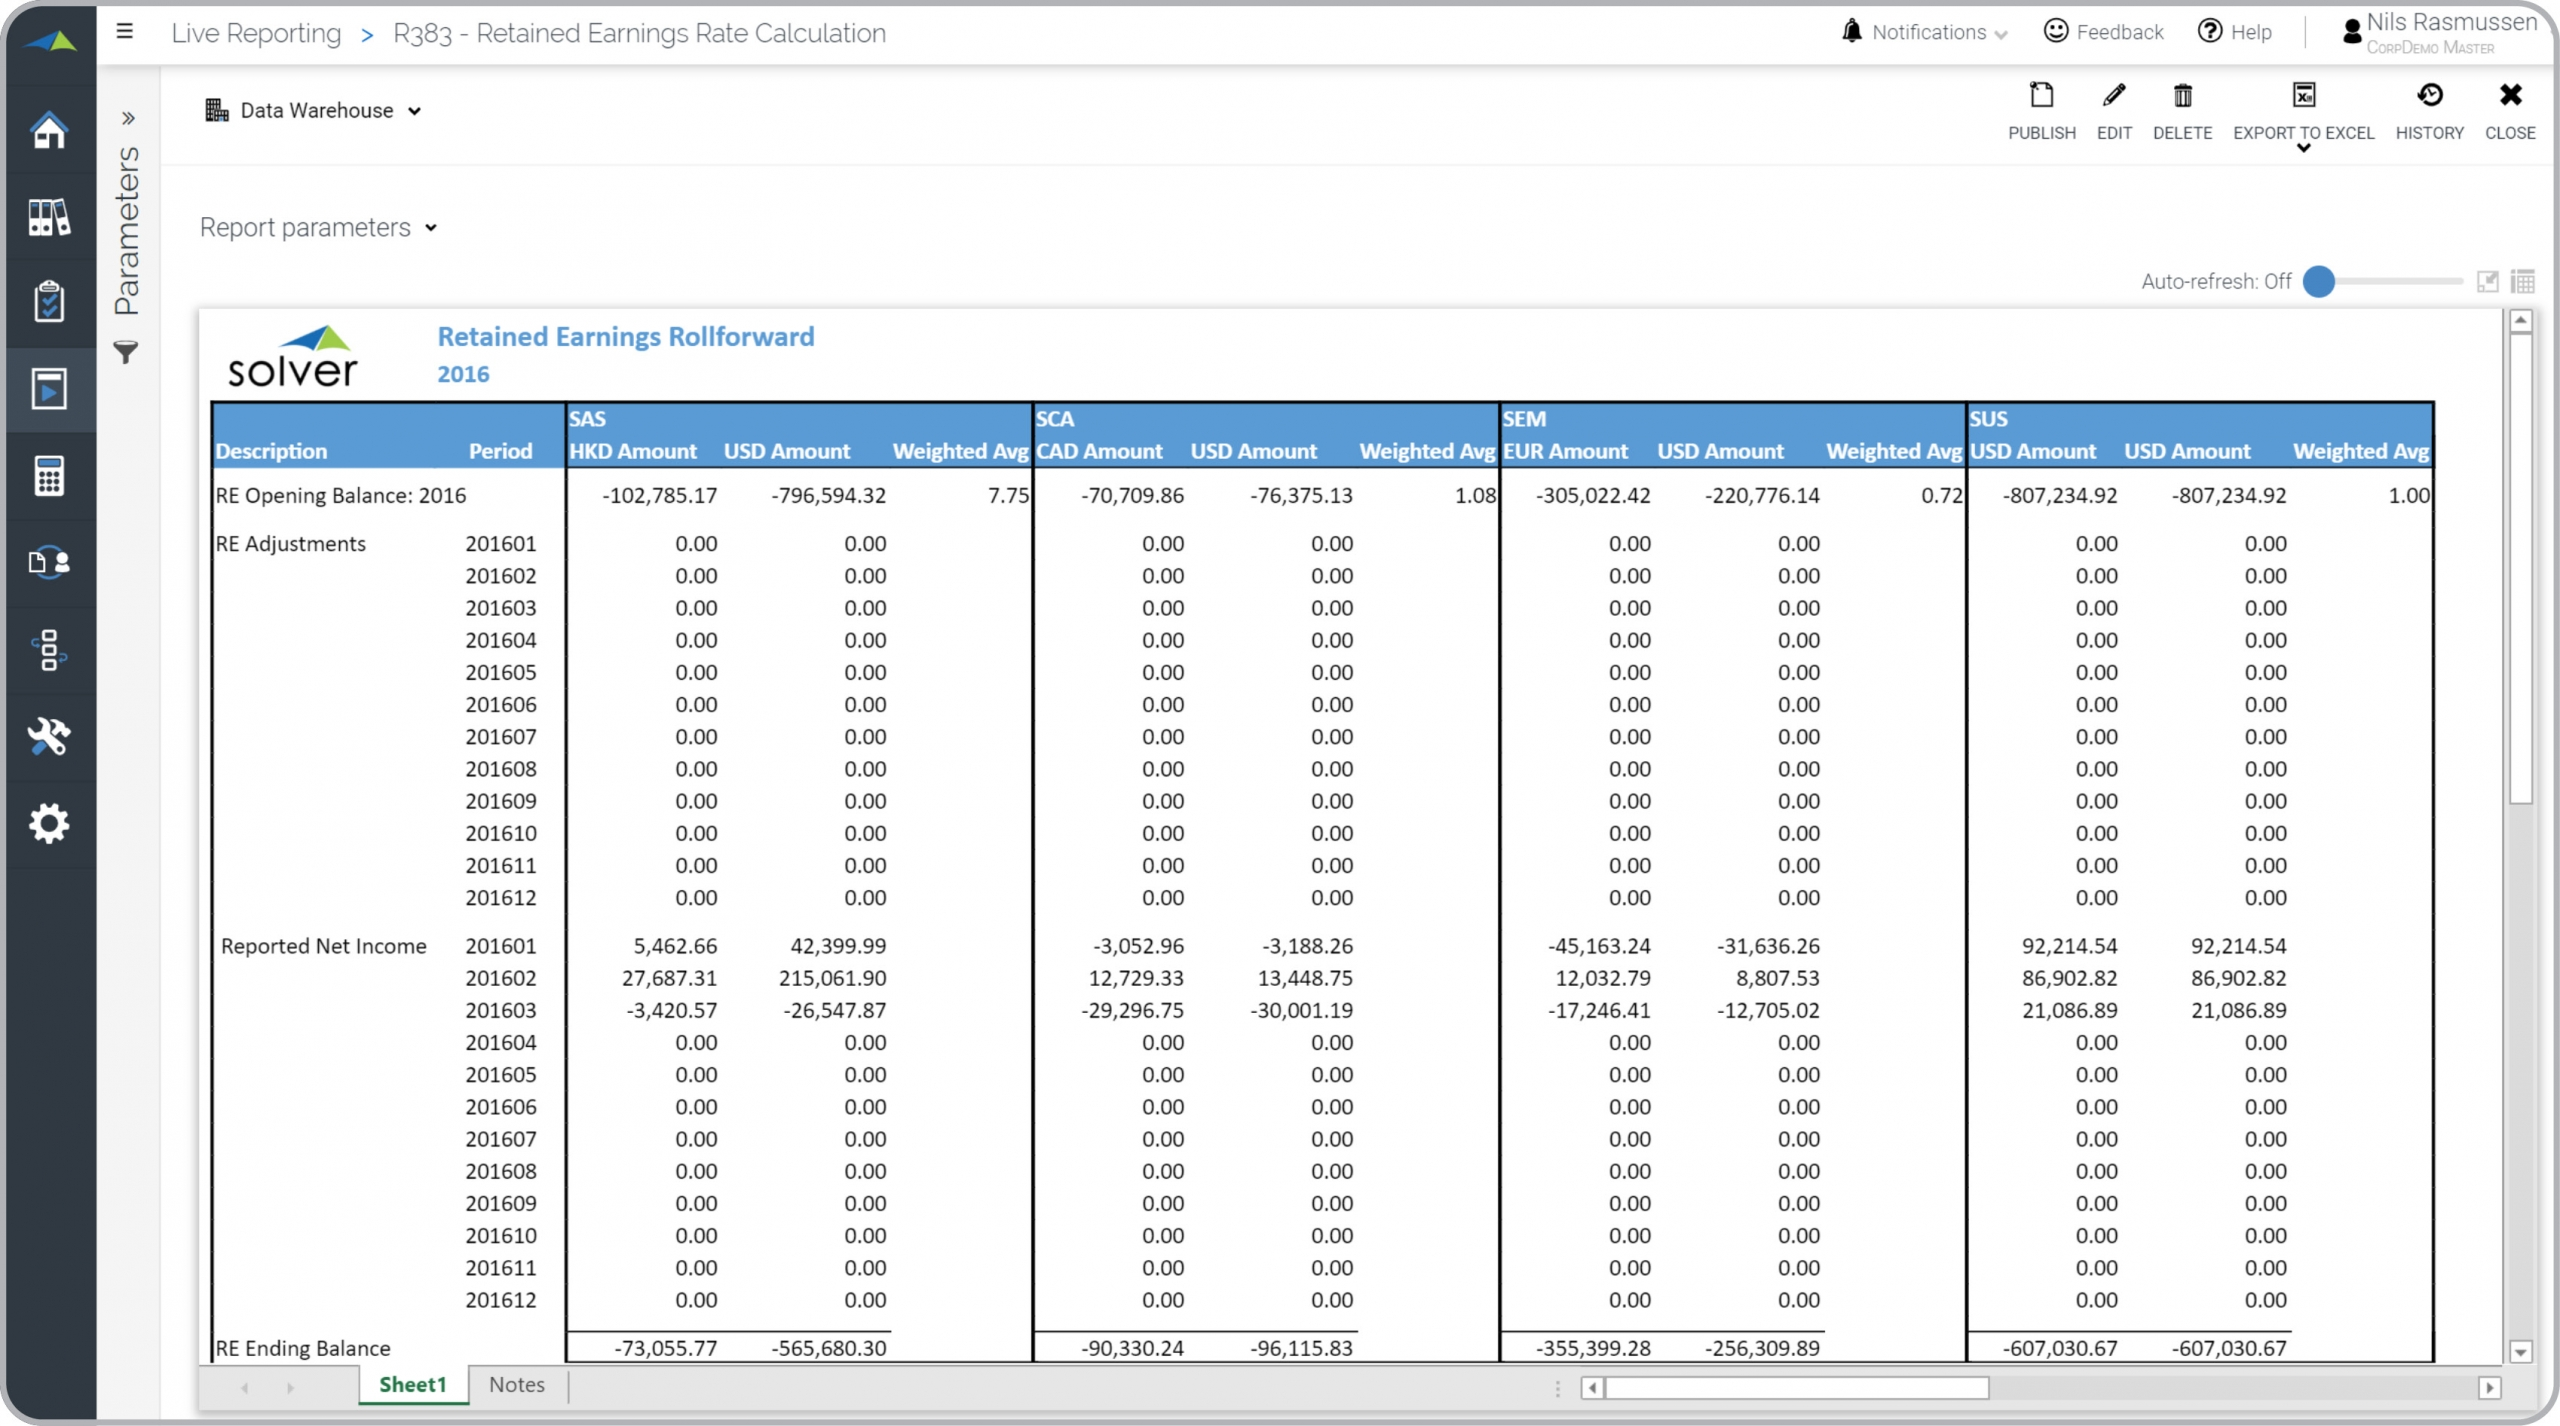 Retained Earnings Rate Calculation Report Example